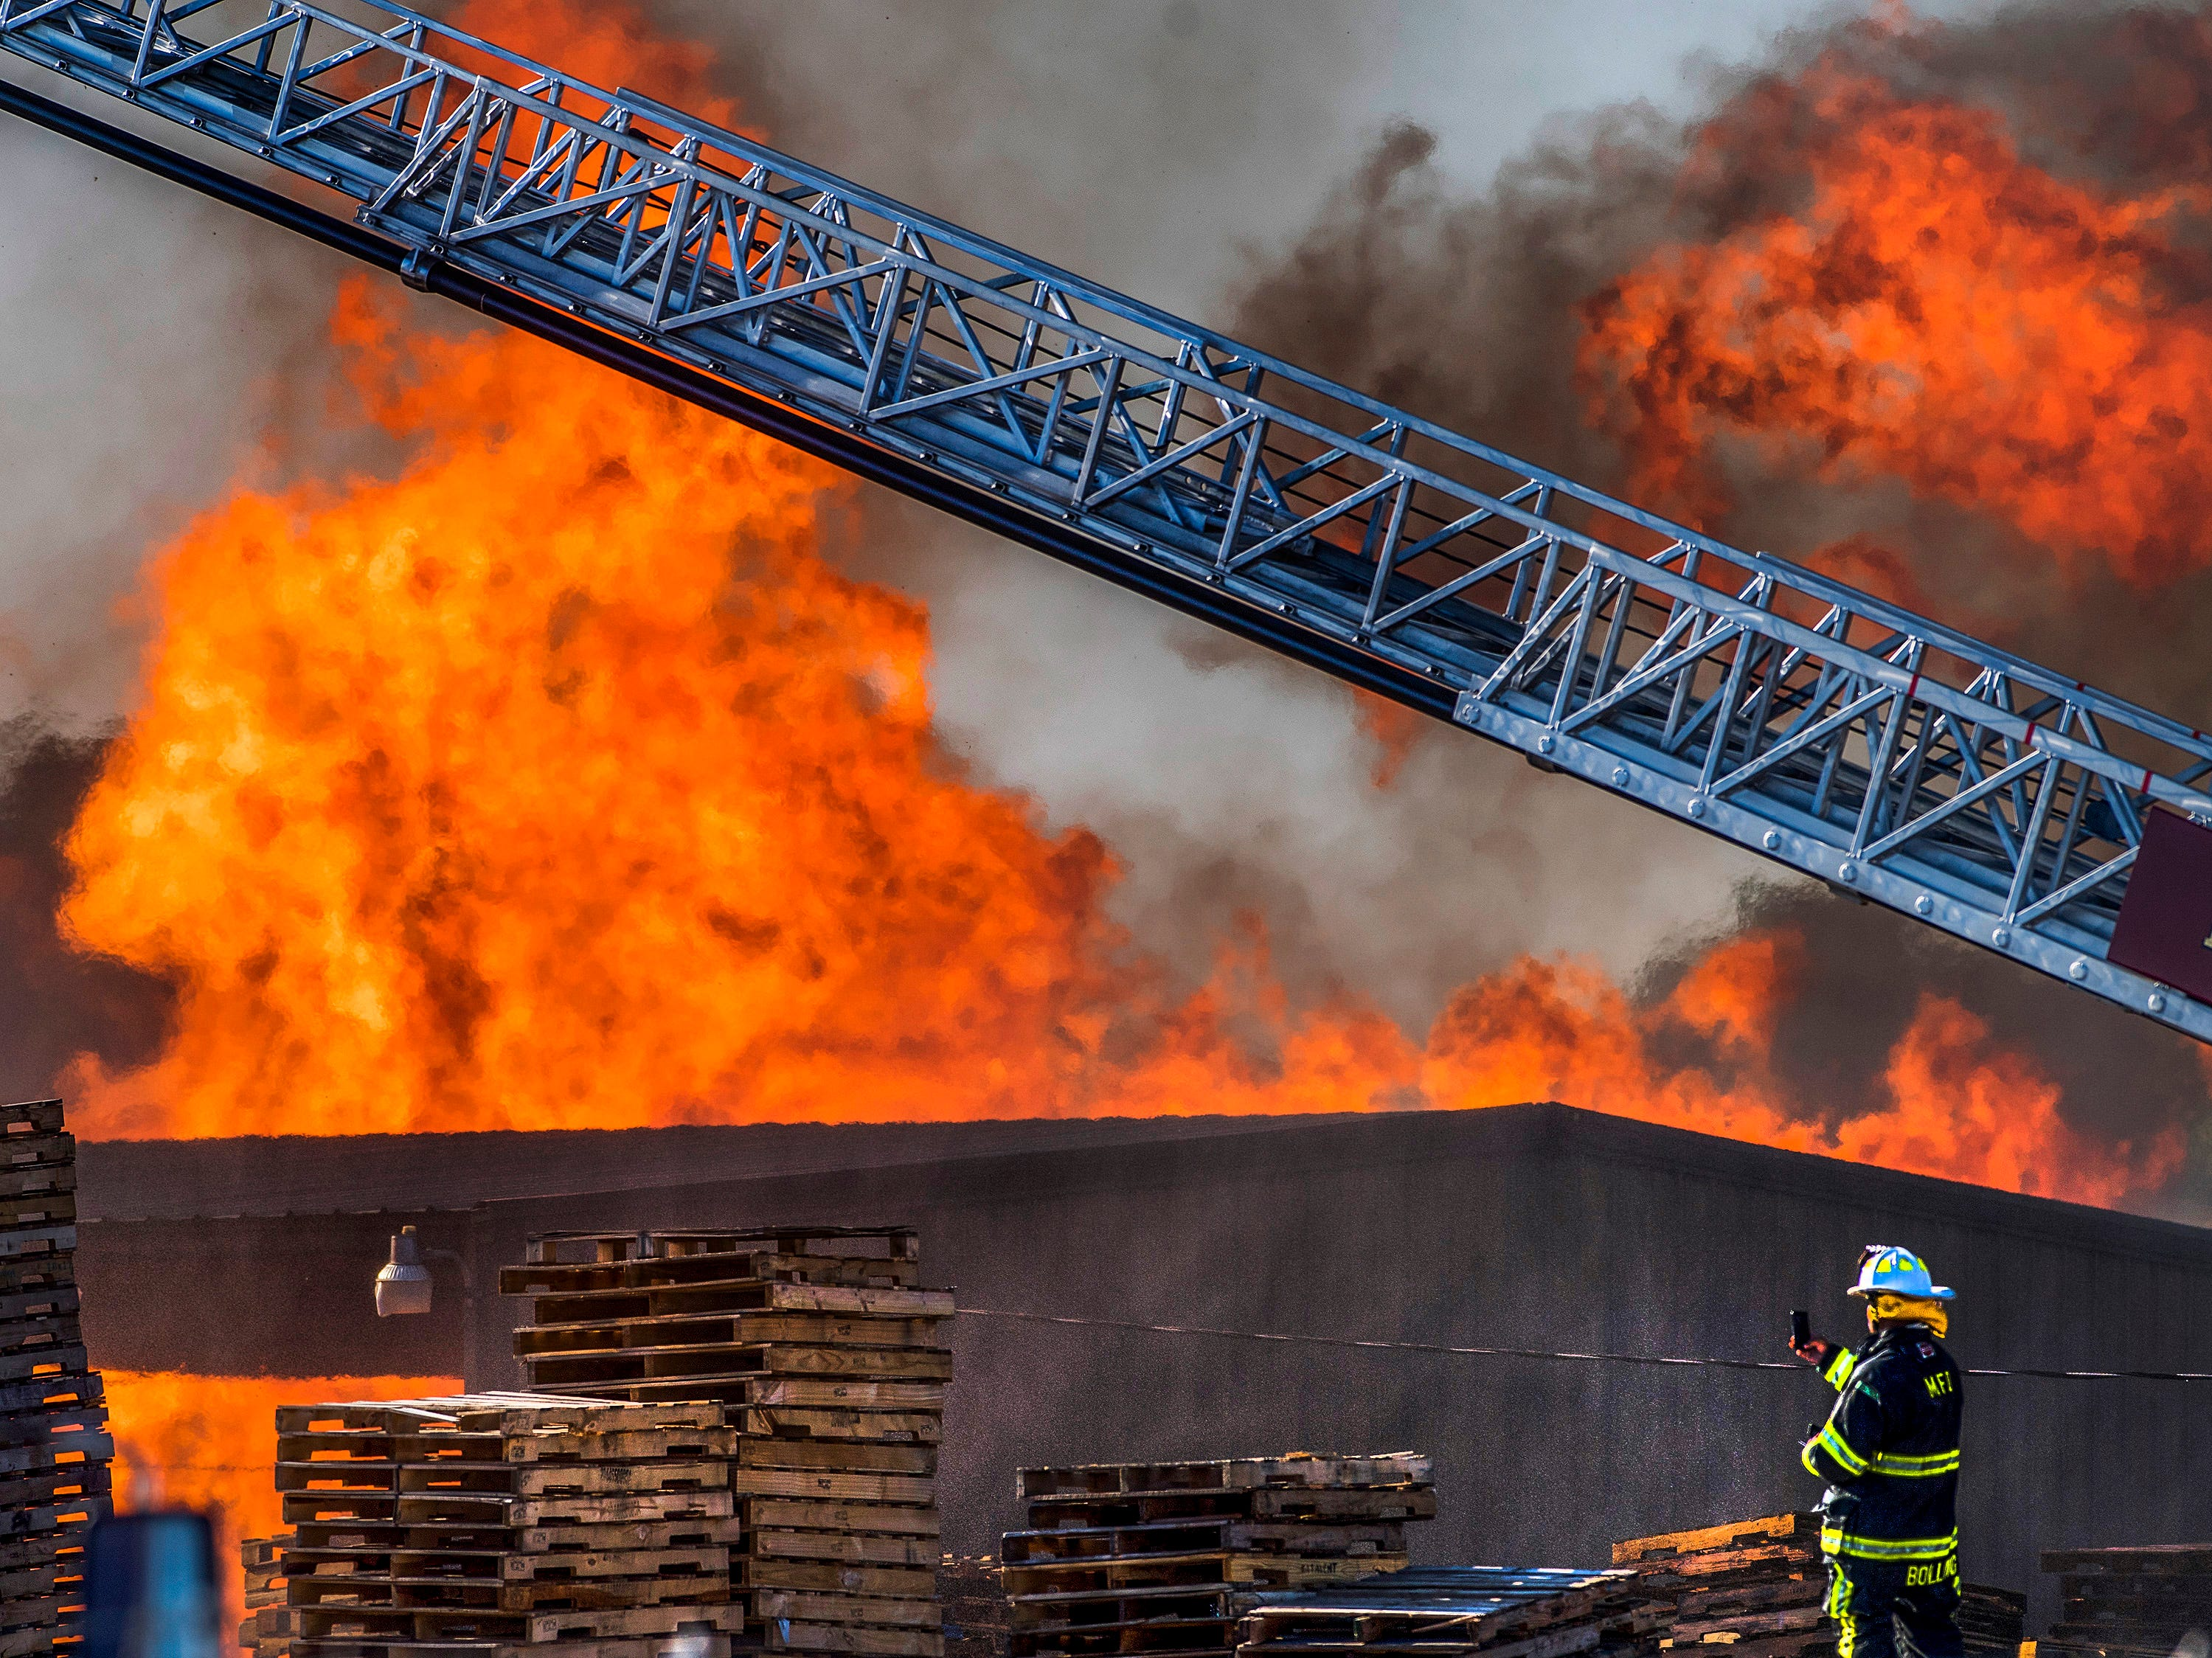 A Montgomery Fire Fighter snaps a photo with his phone as firefighters fight a pallet warehouse fire off of Furnace Street in North Montgomery, Ala. on Wednesday April 18, 2018.